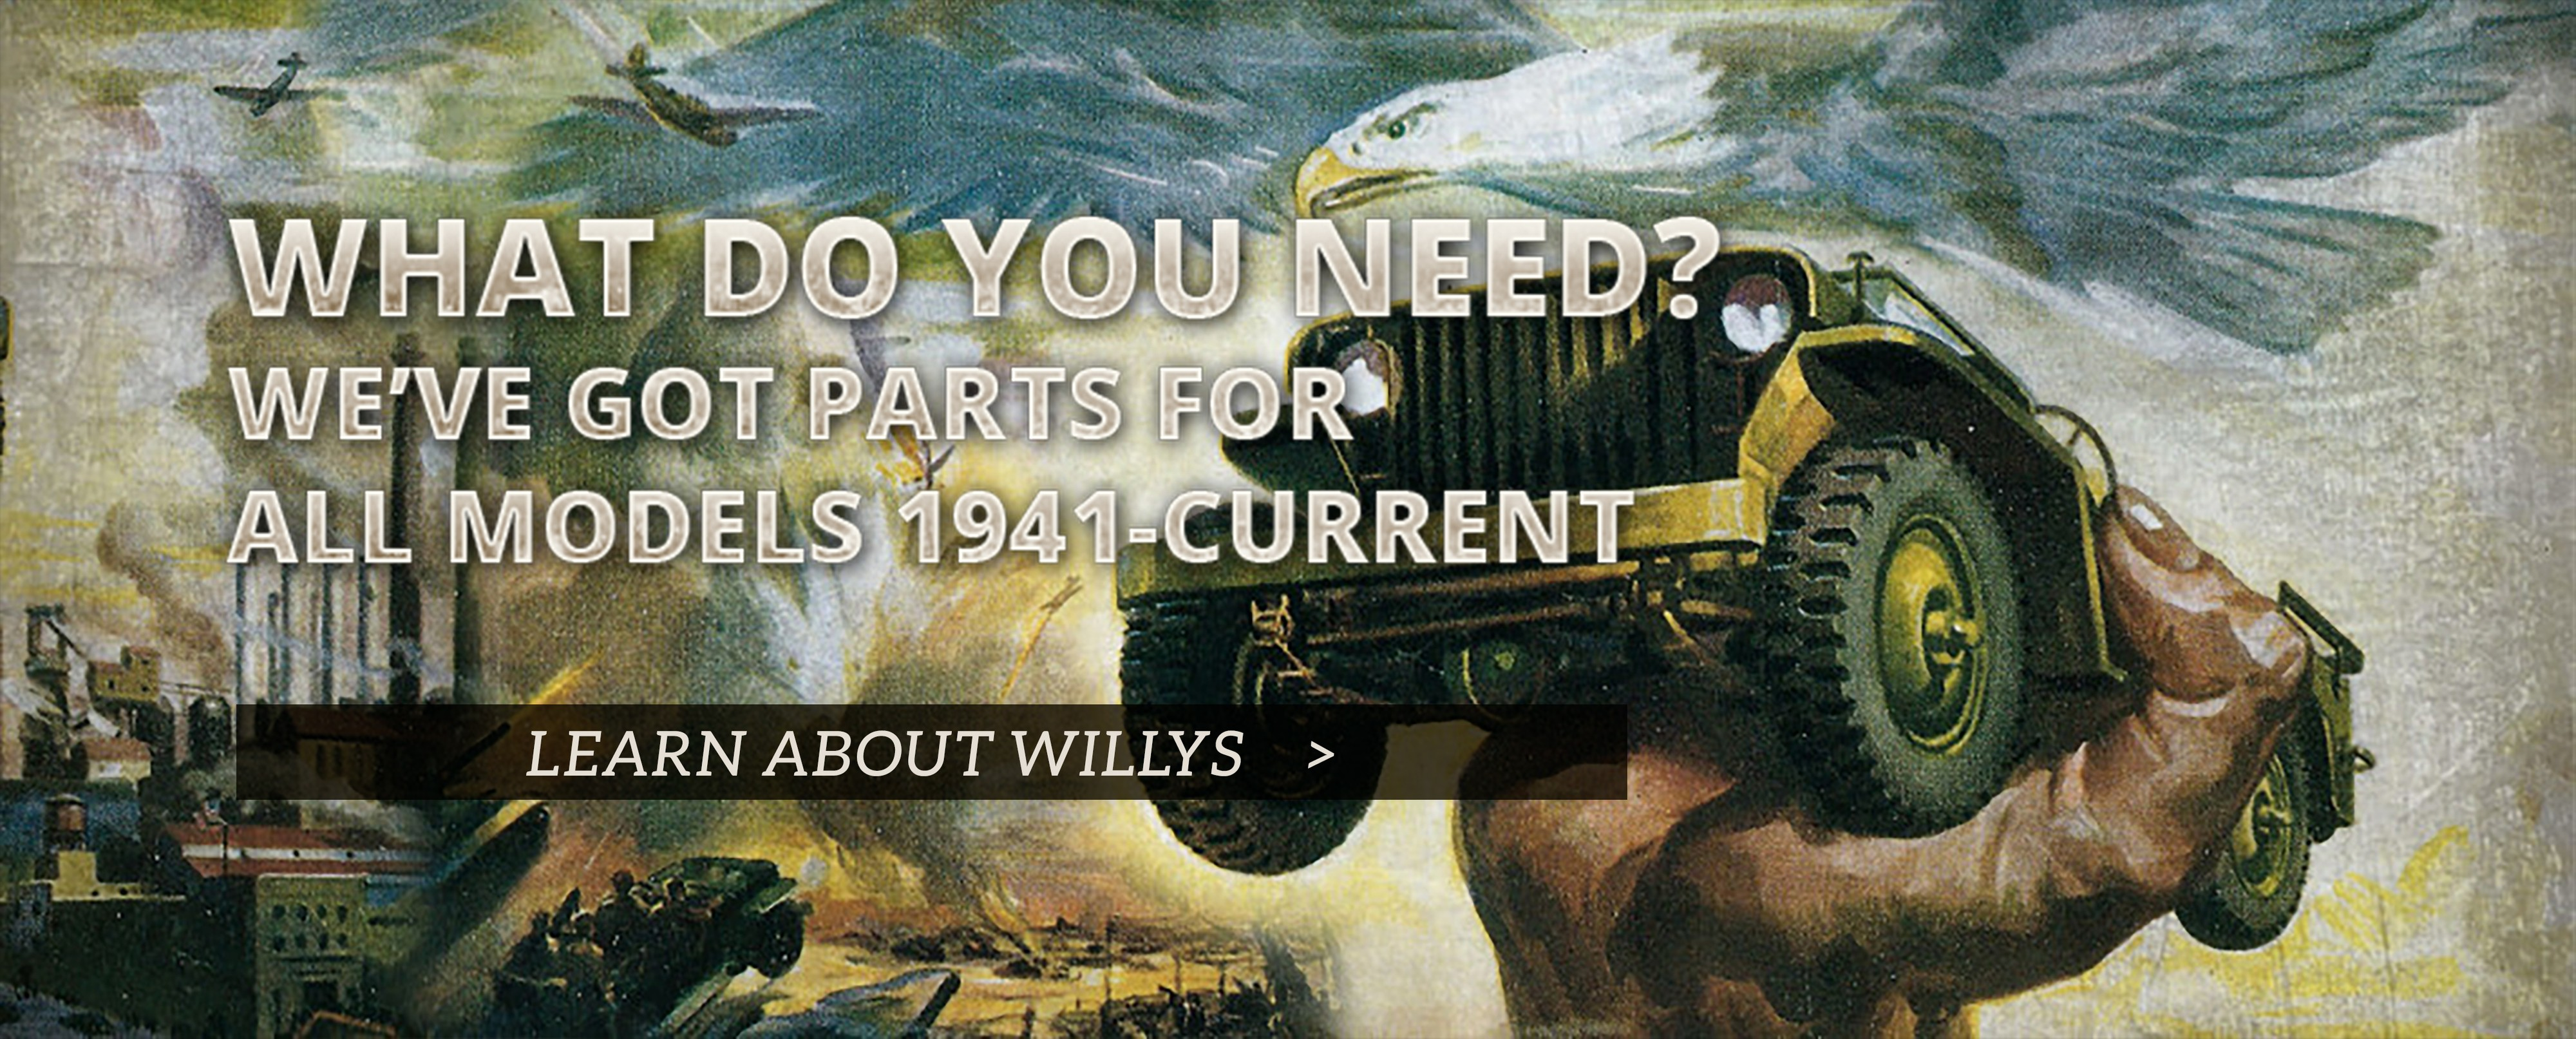 Willys Overland Jeep Repli-Tubs